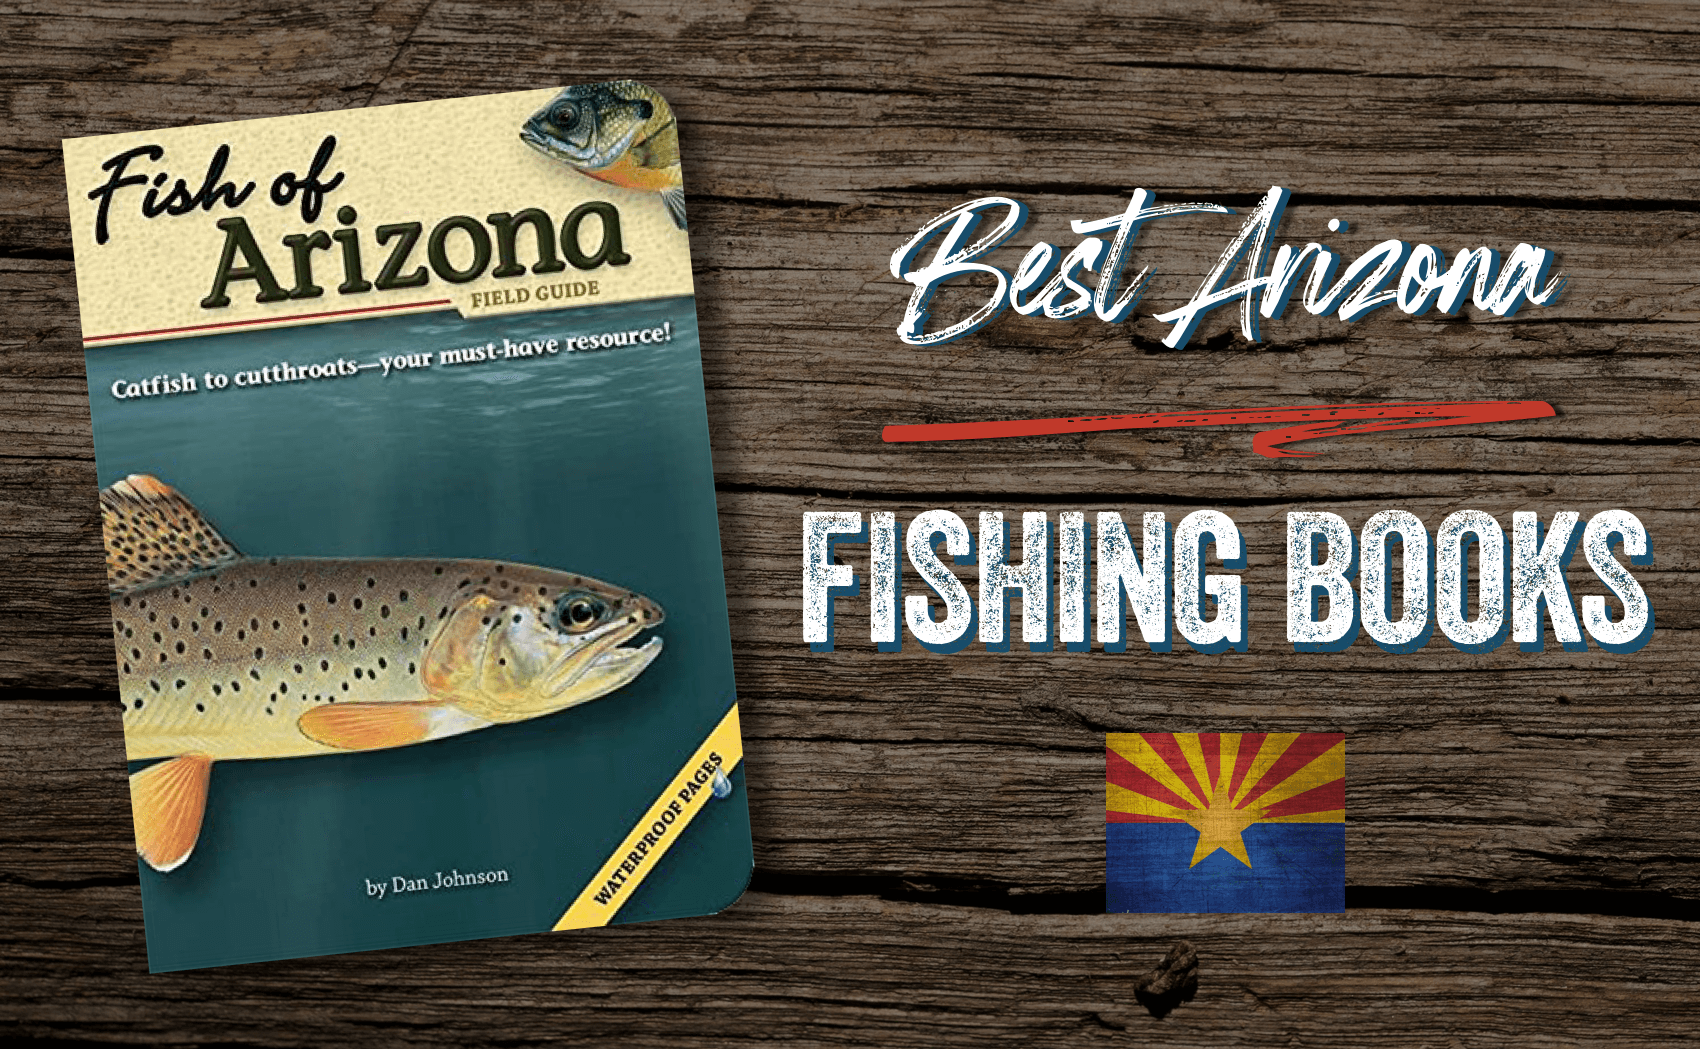 Best-Fishing-Books-Guides-in-Arizona-AZ